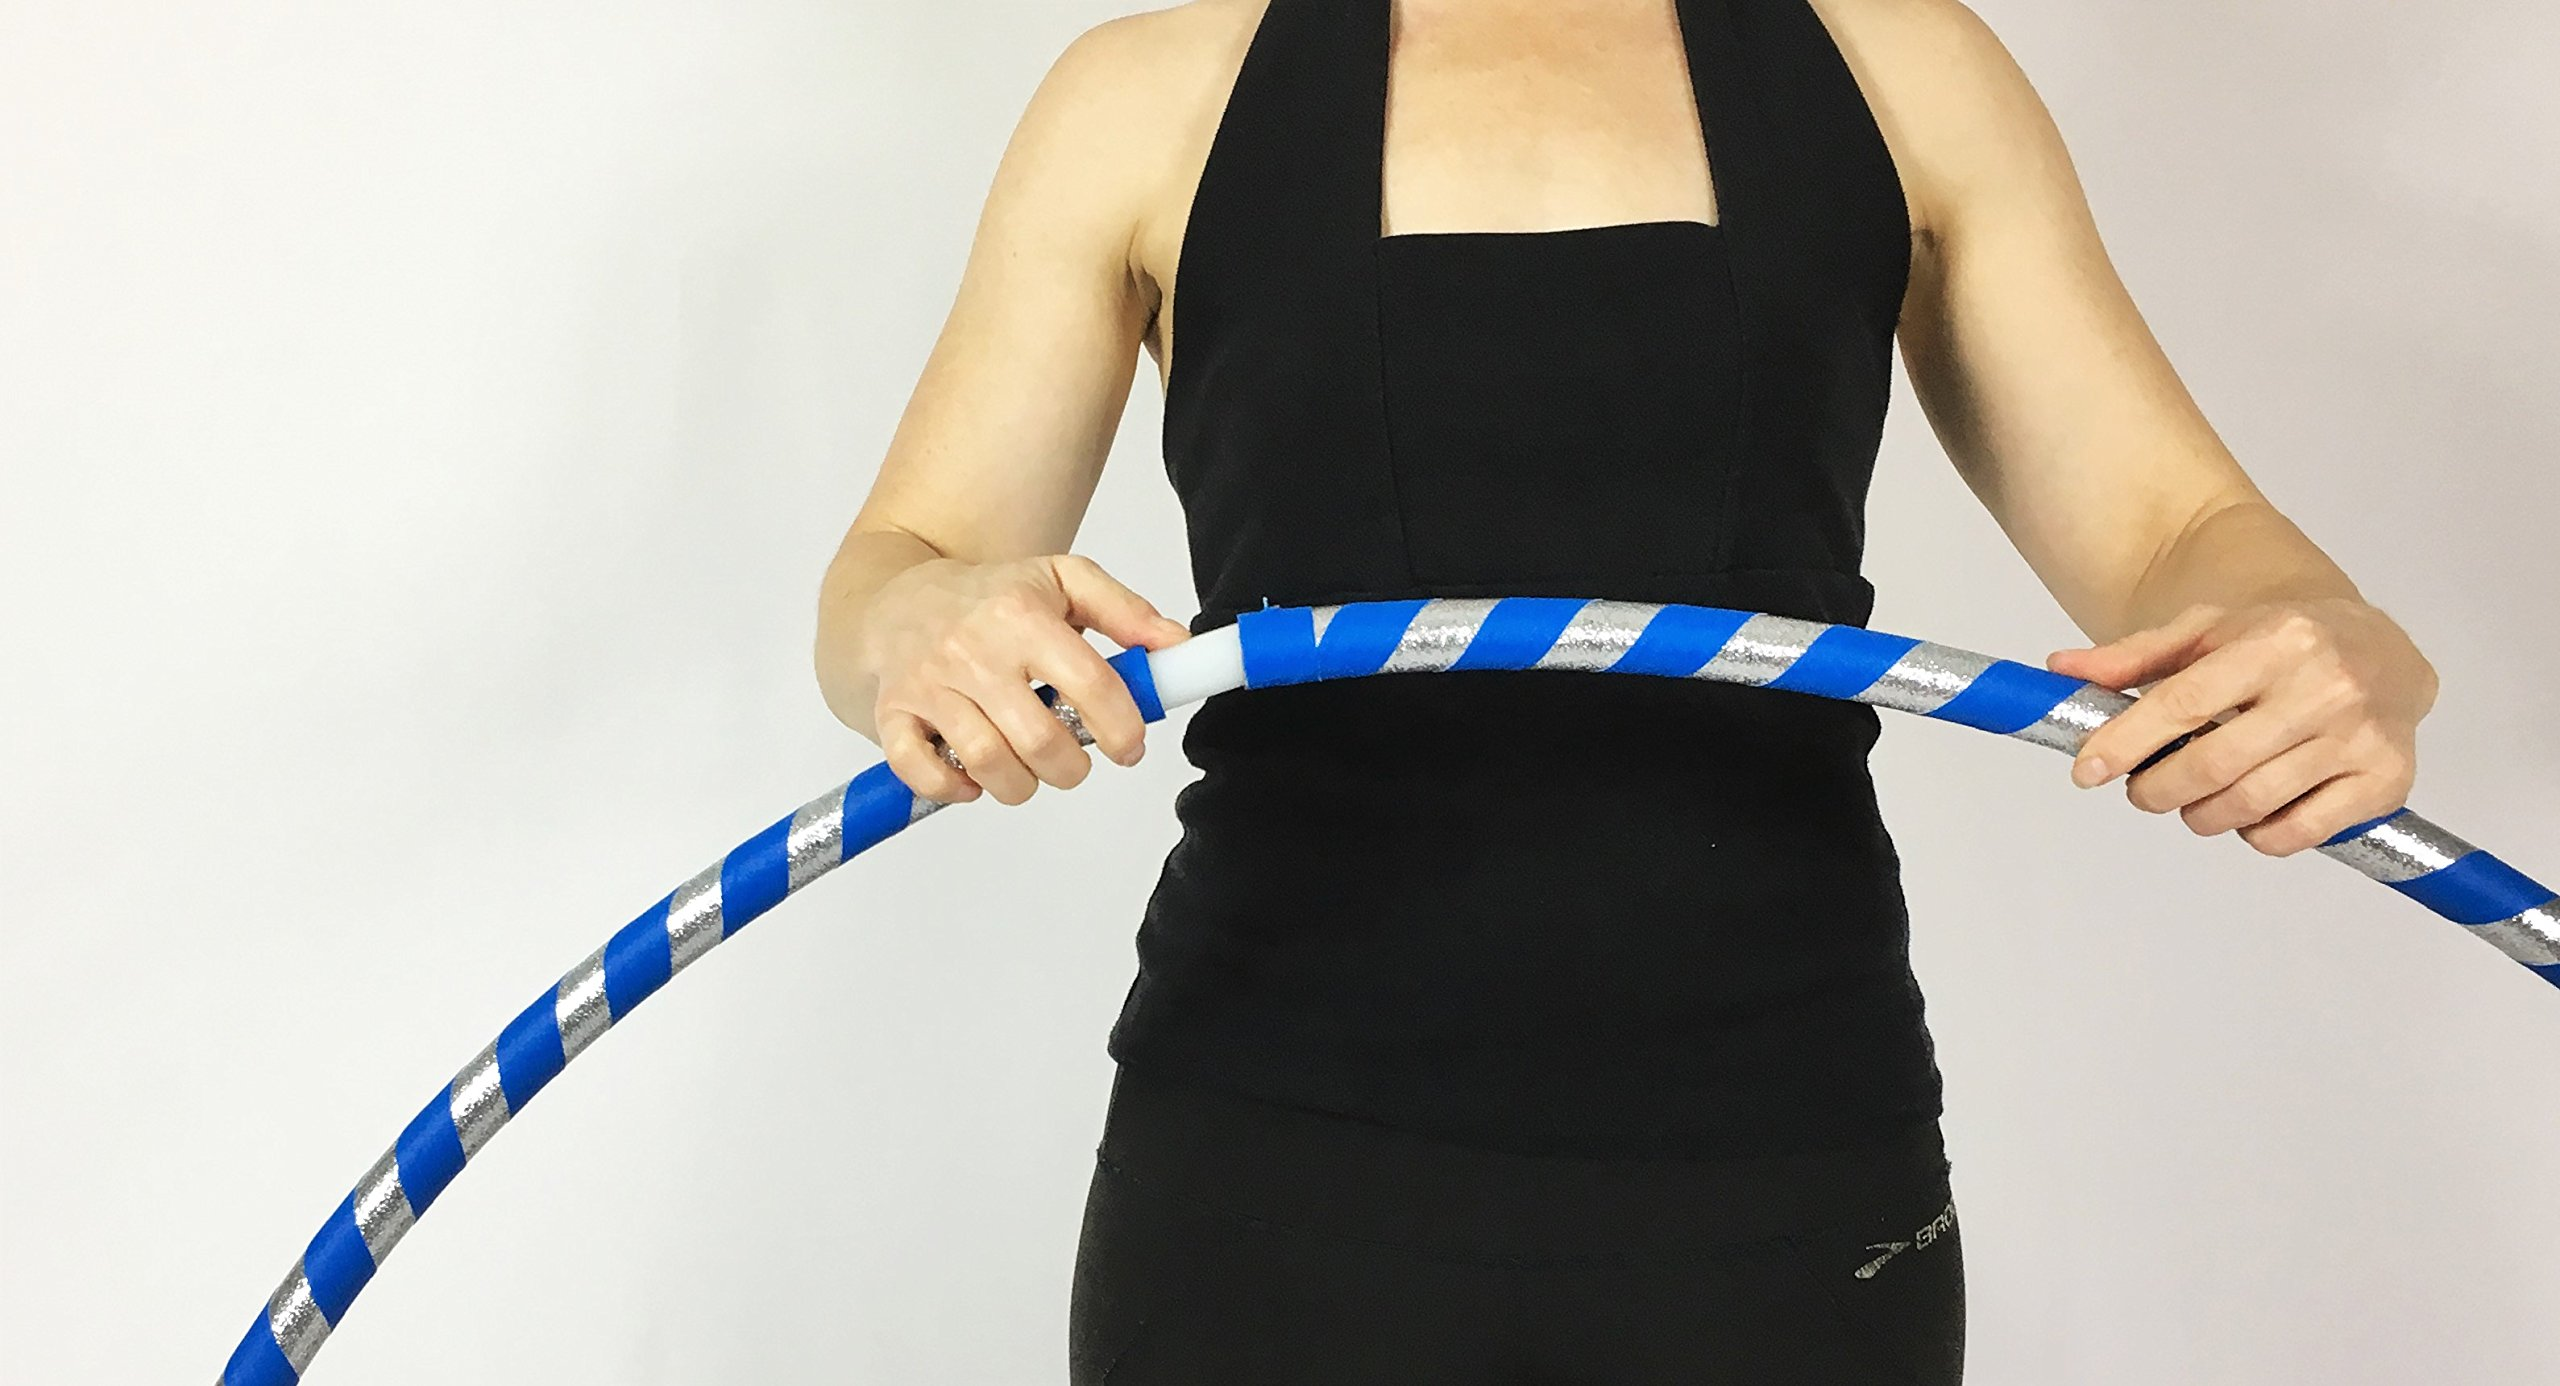 Weighted Hula Hoop for Exercise and Fitness - Glitter & Prismatic Tapes by Canyon Hoops (Image #5)